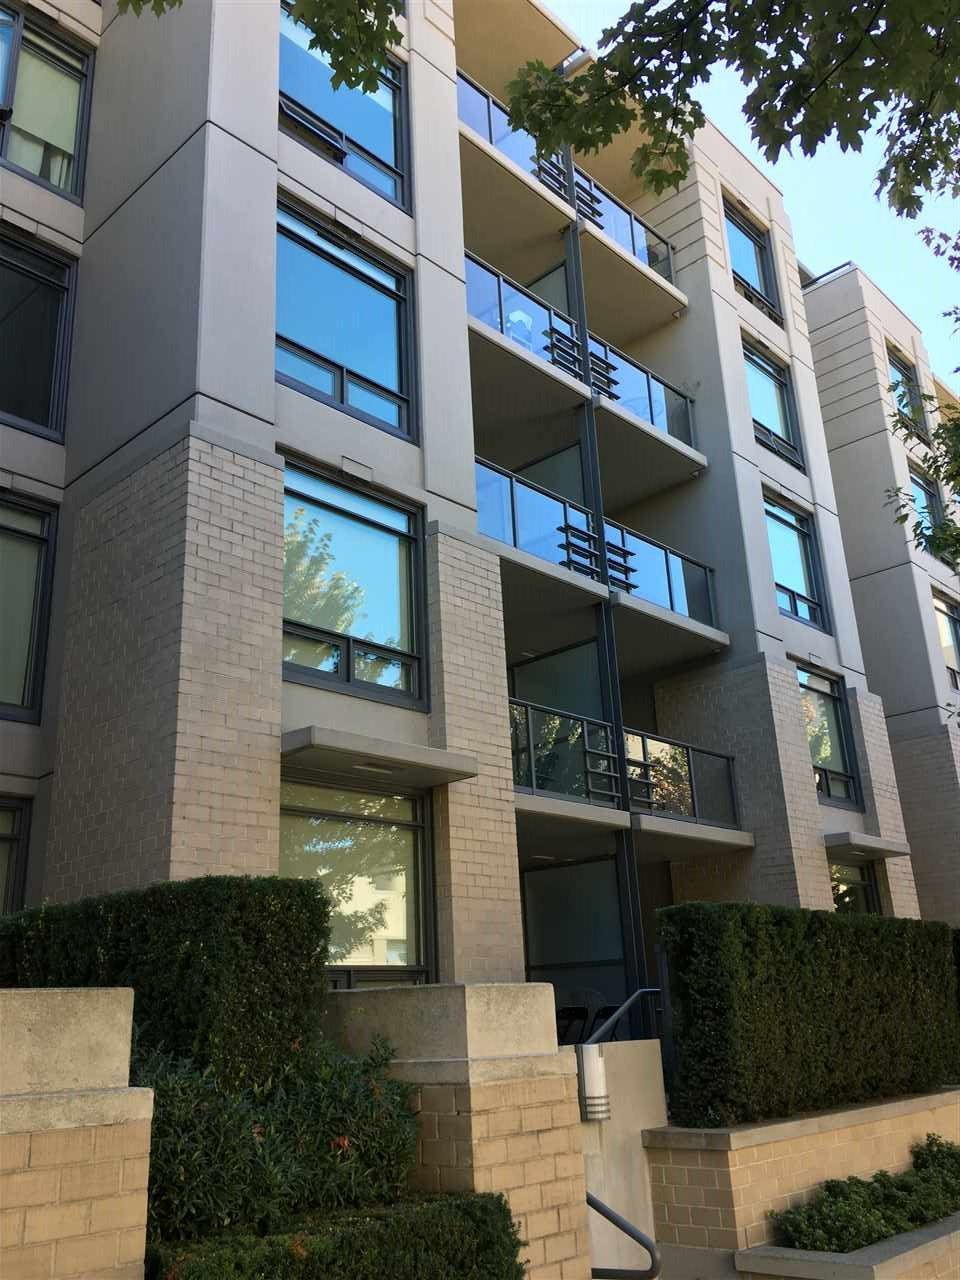 """Main Photo: 311 750 W 12TH Avenue in Vancouver: Fairview VW Condo for sale in """"TAPESTRY"""" (Vancouver West)  : MLS®# R2201307"""